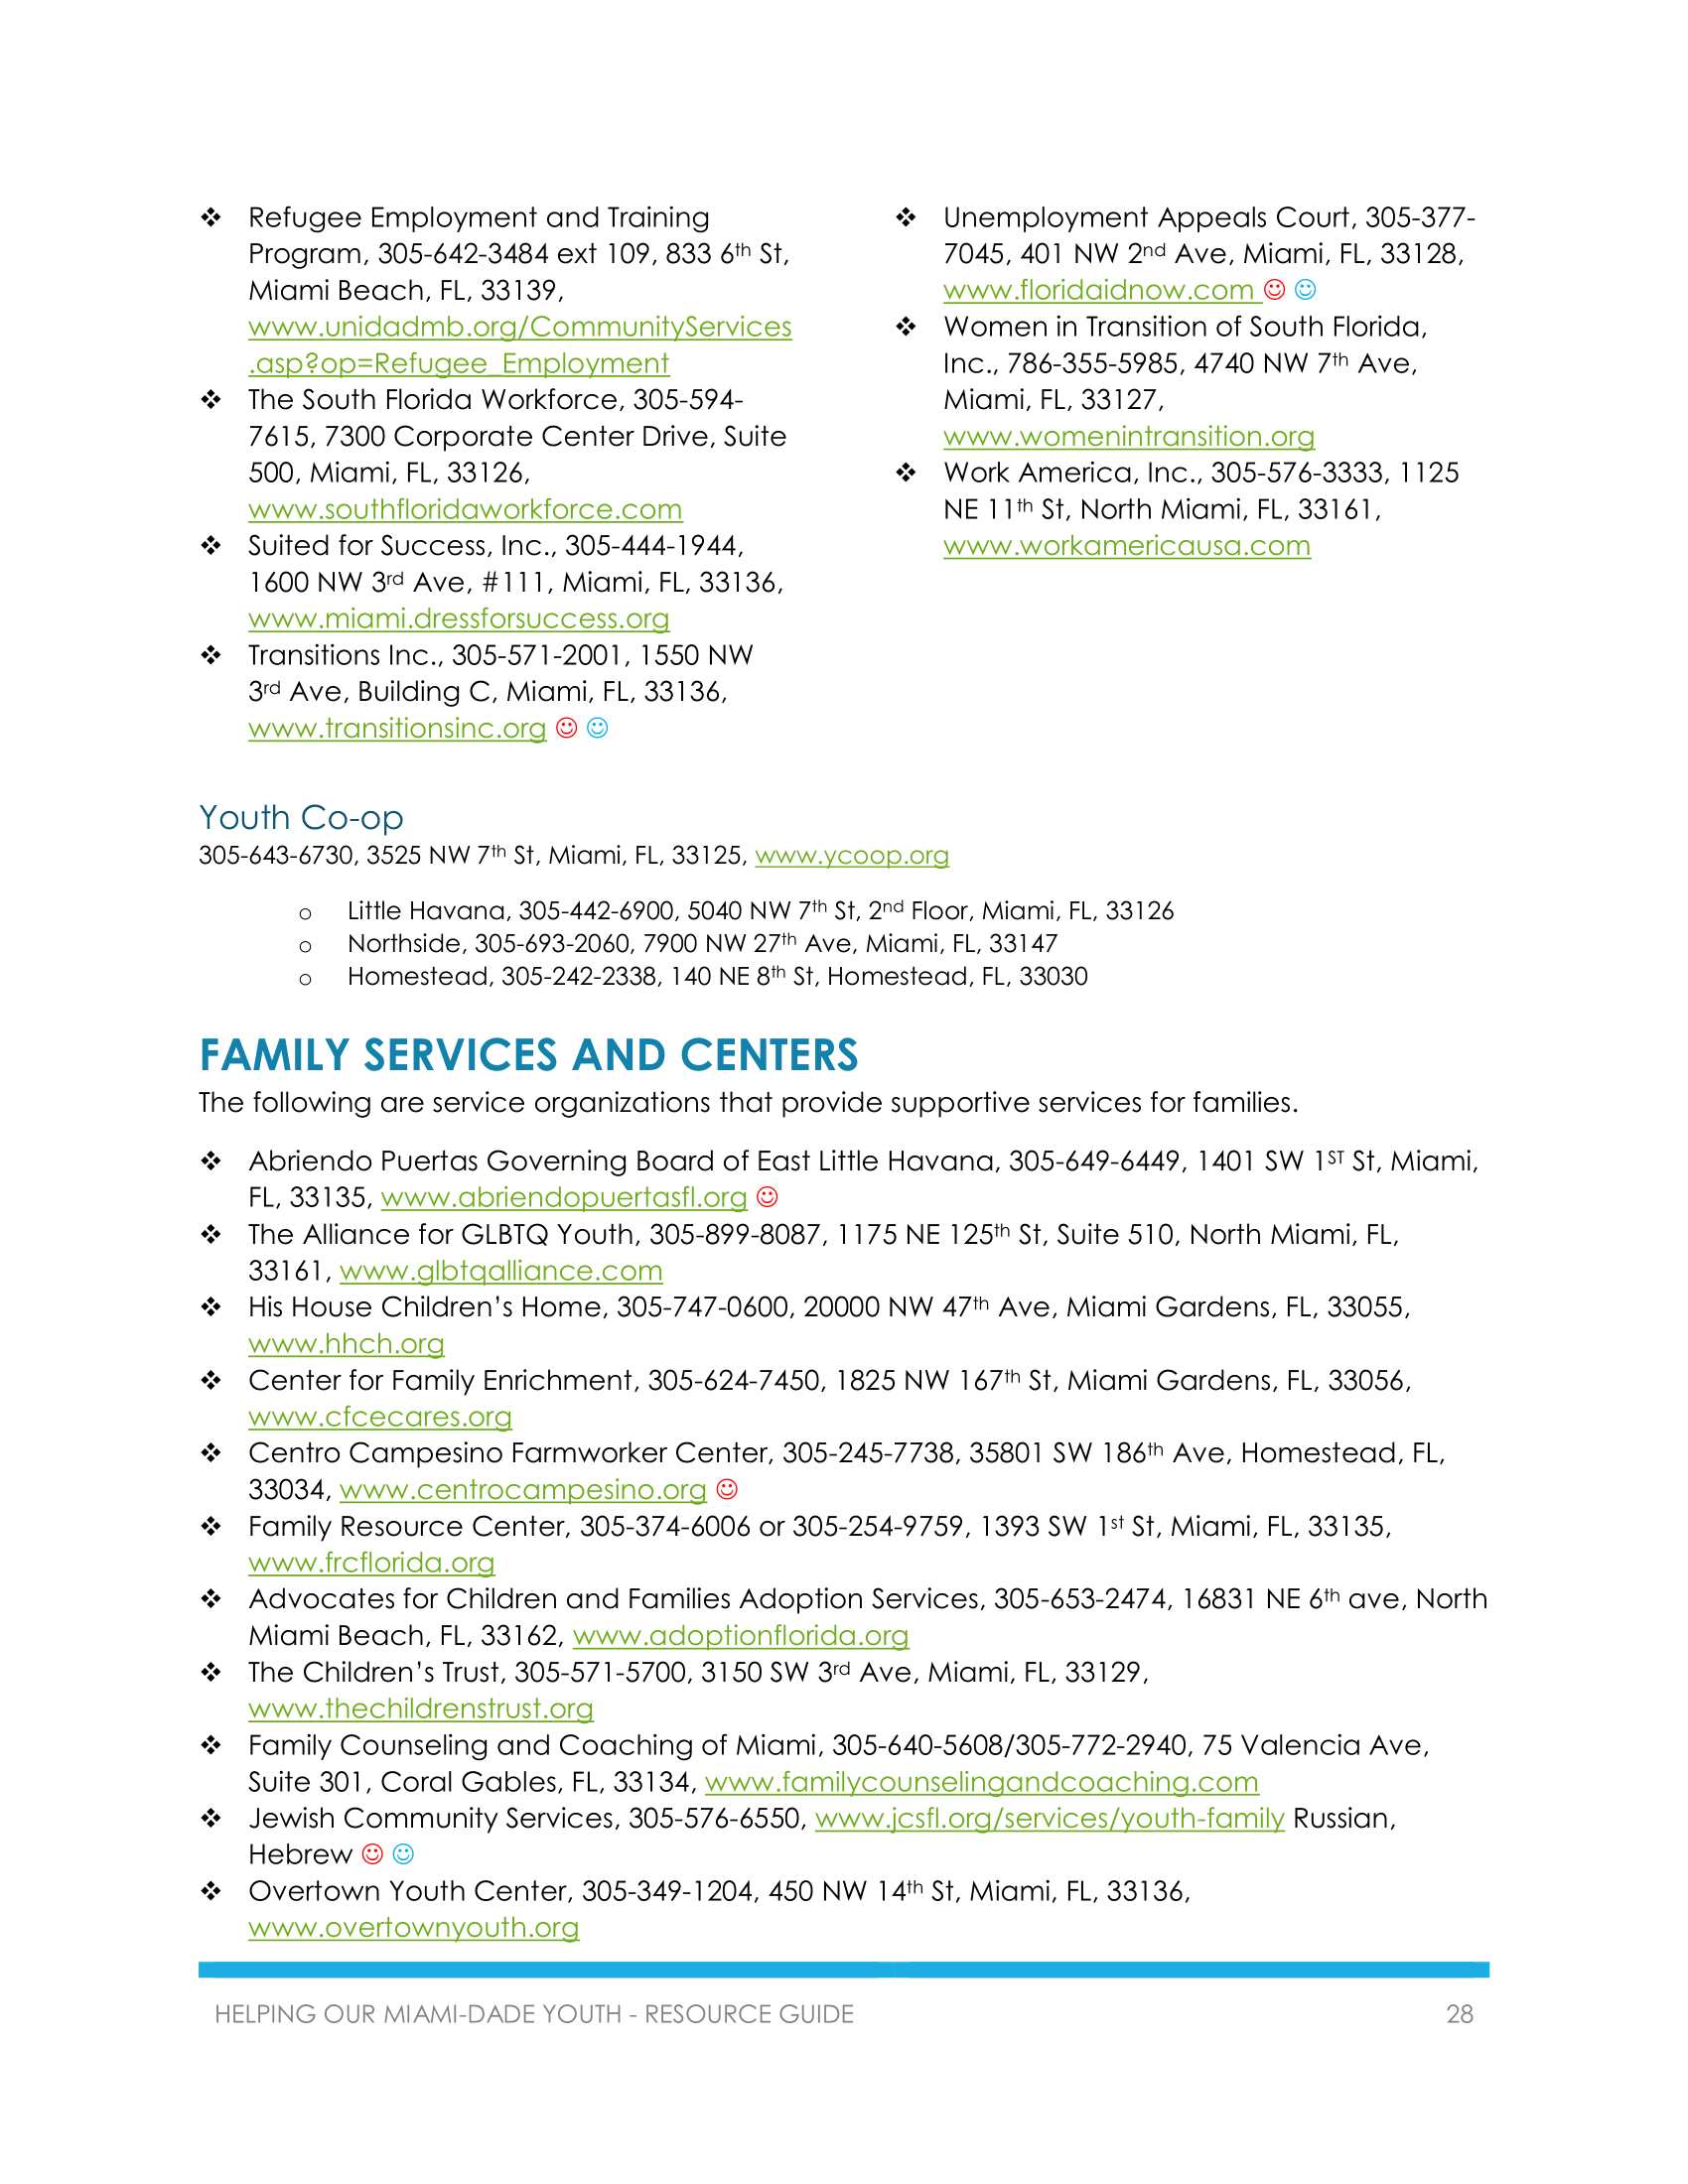 Youth Resource Guide - May 2018-33.png